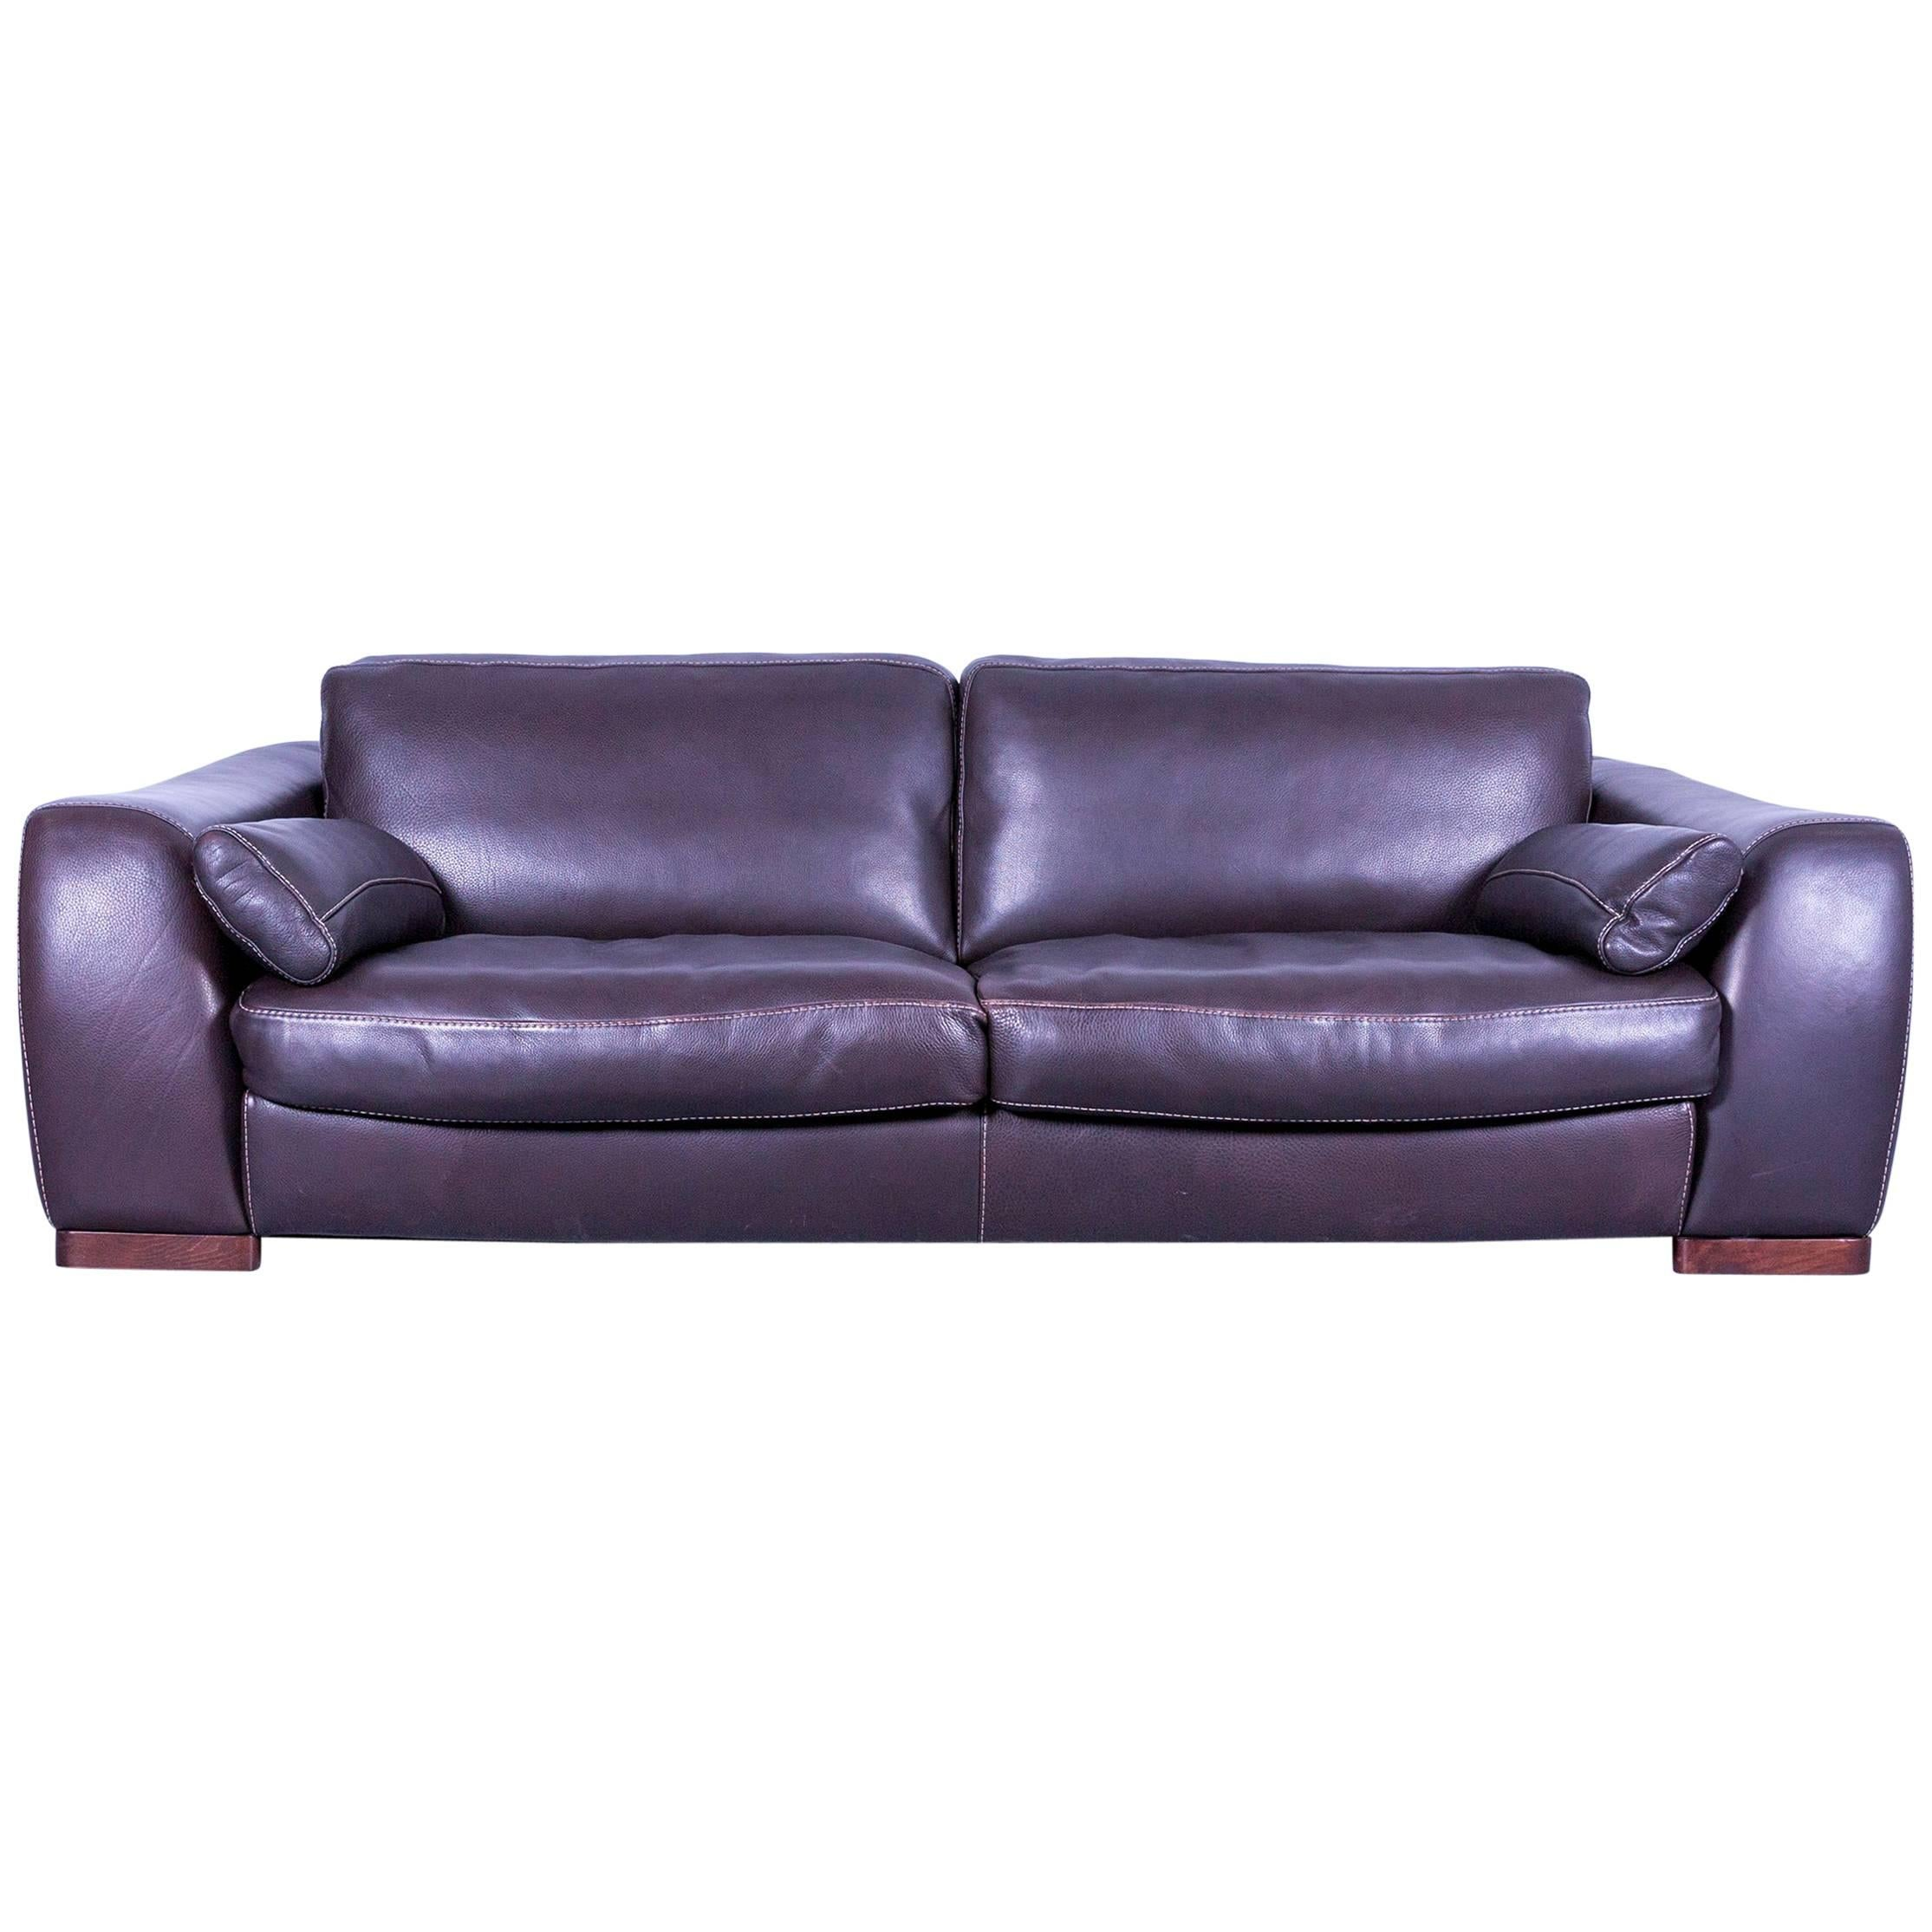 Incanto Designer Sofa Brown Three Seater Couch With Pillows Leather For Sale